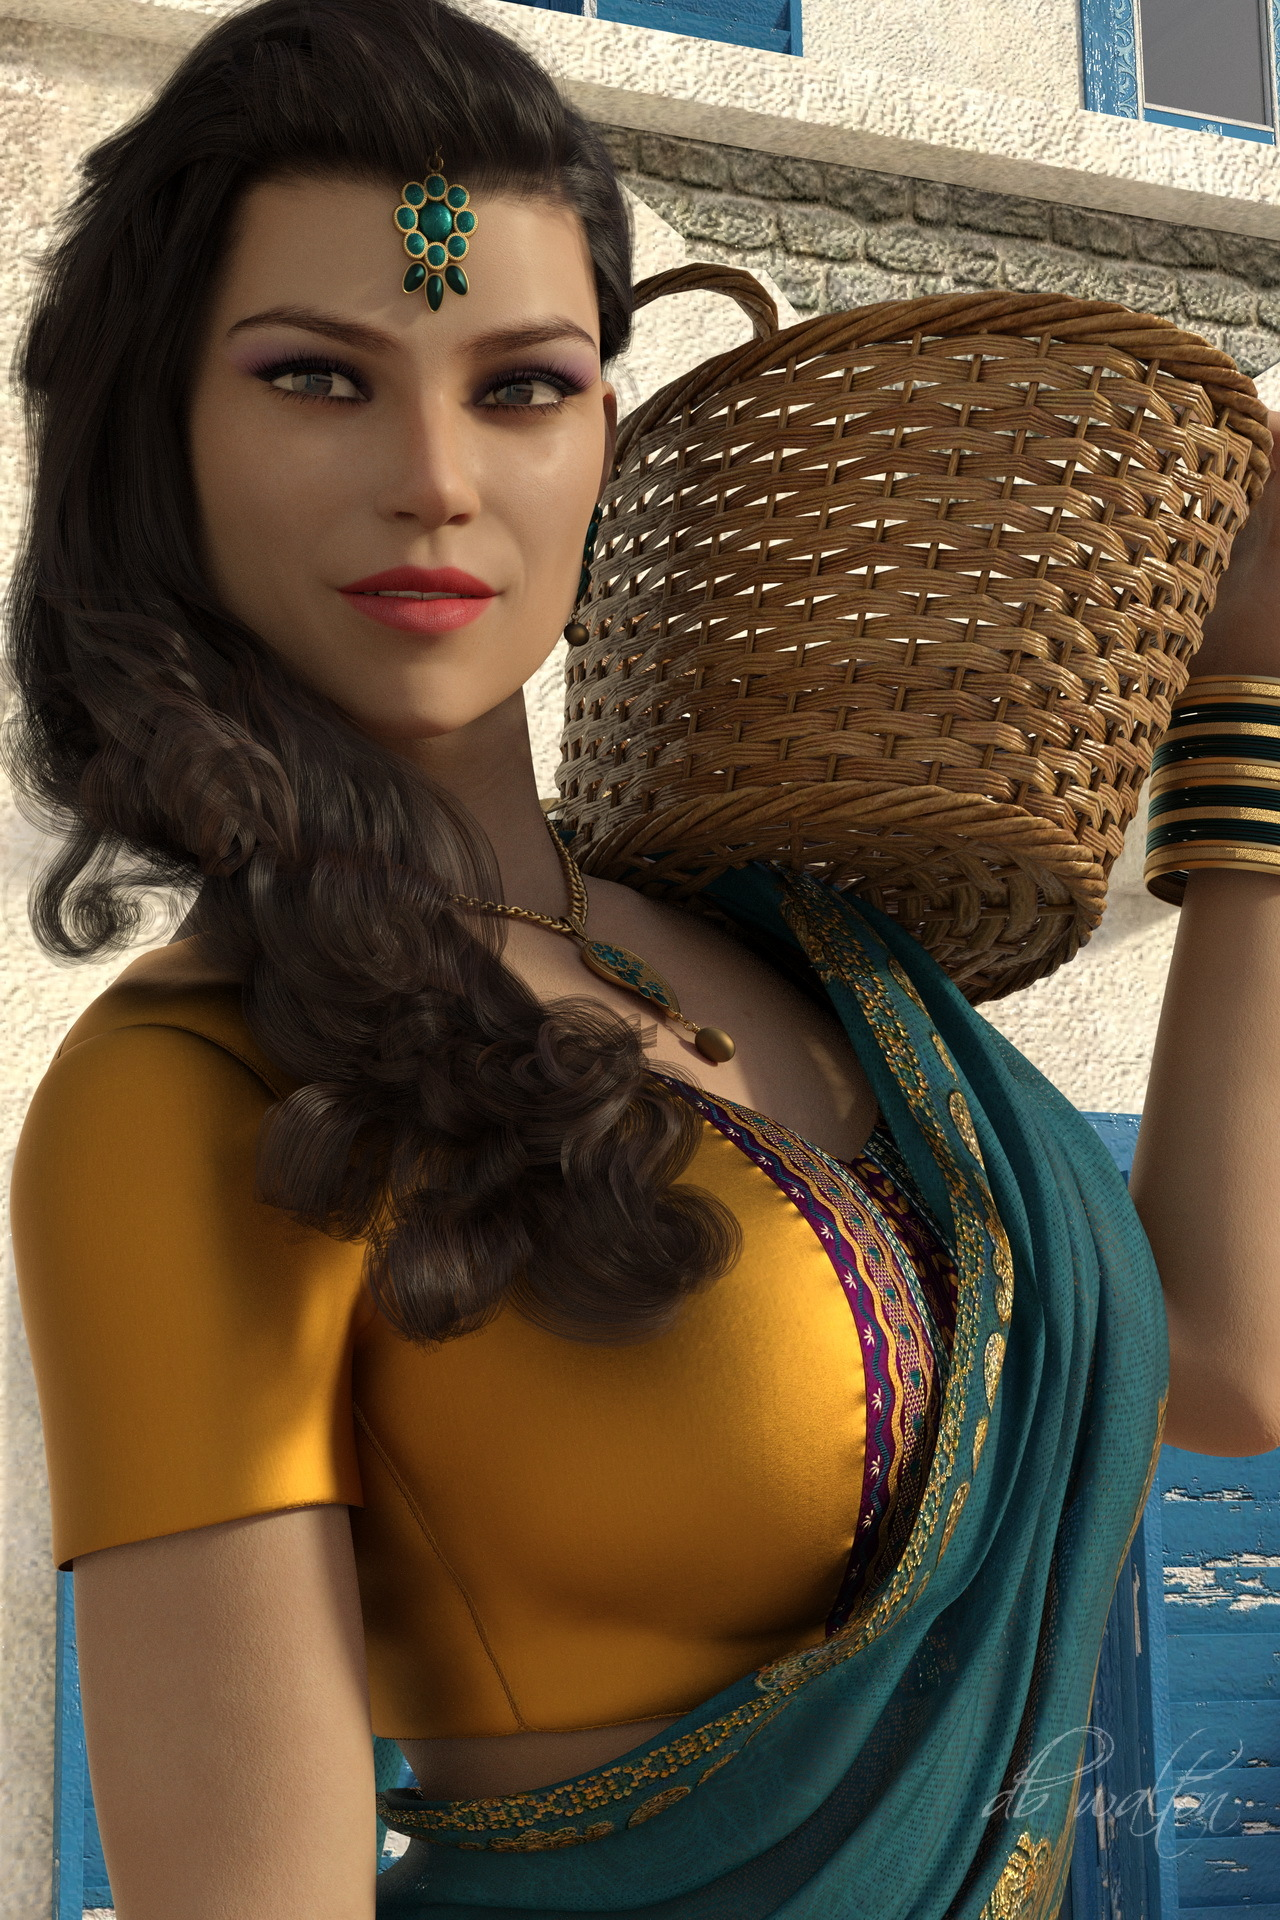 Indian Woman and Basket